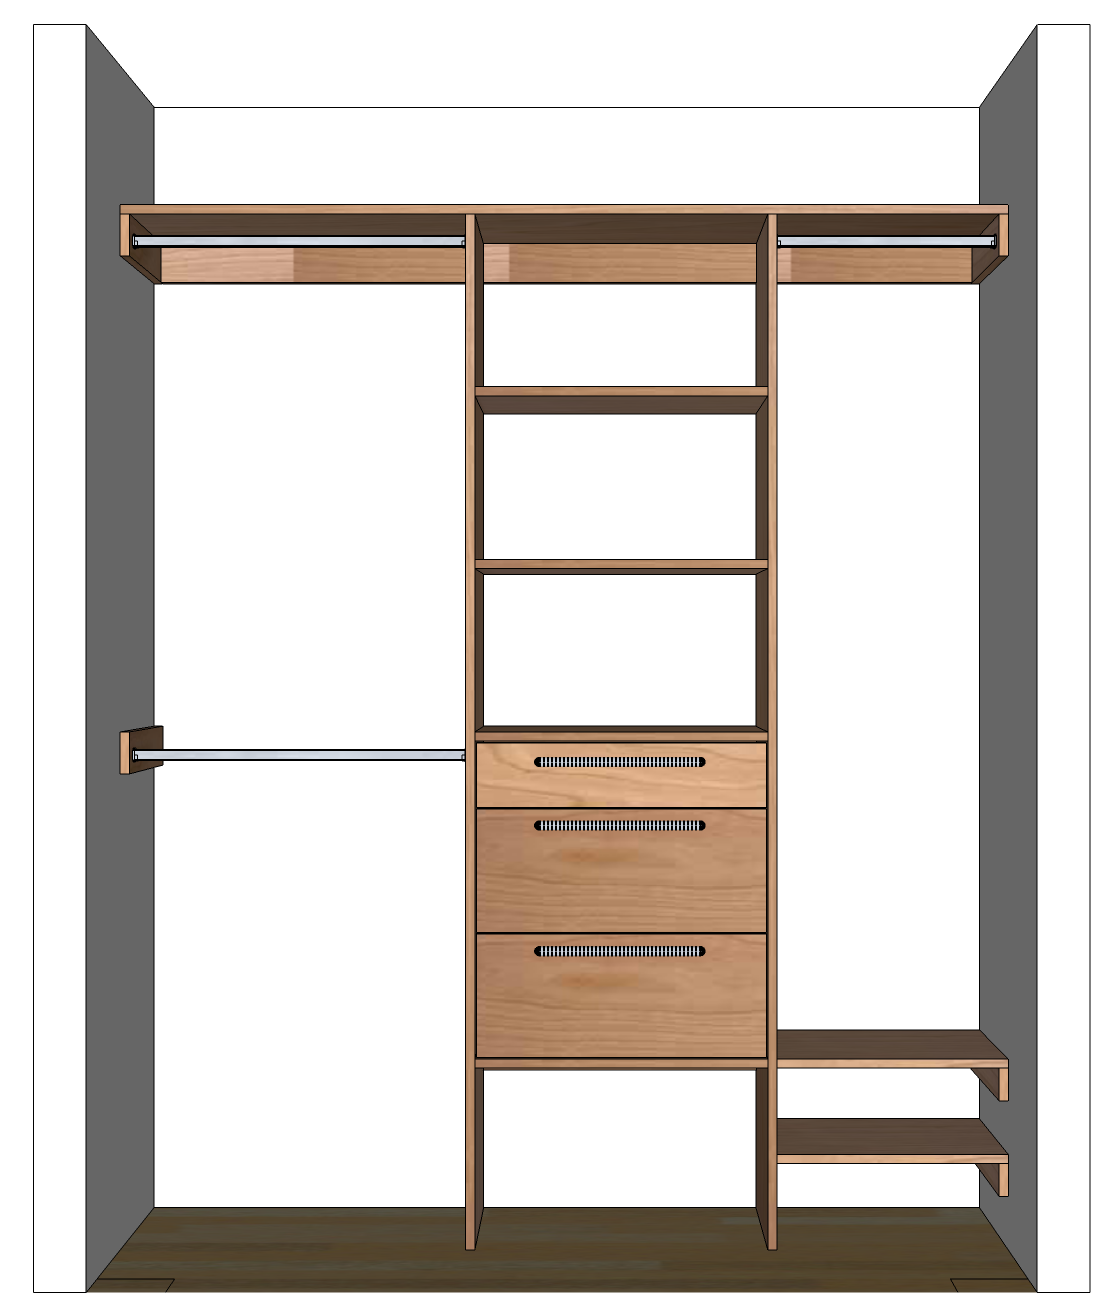 diy closet organizer plans for 5 39 to 8 39 closet